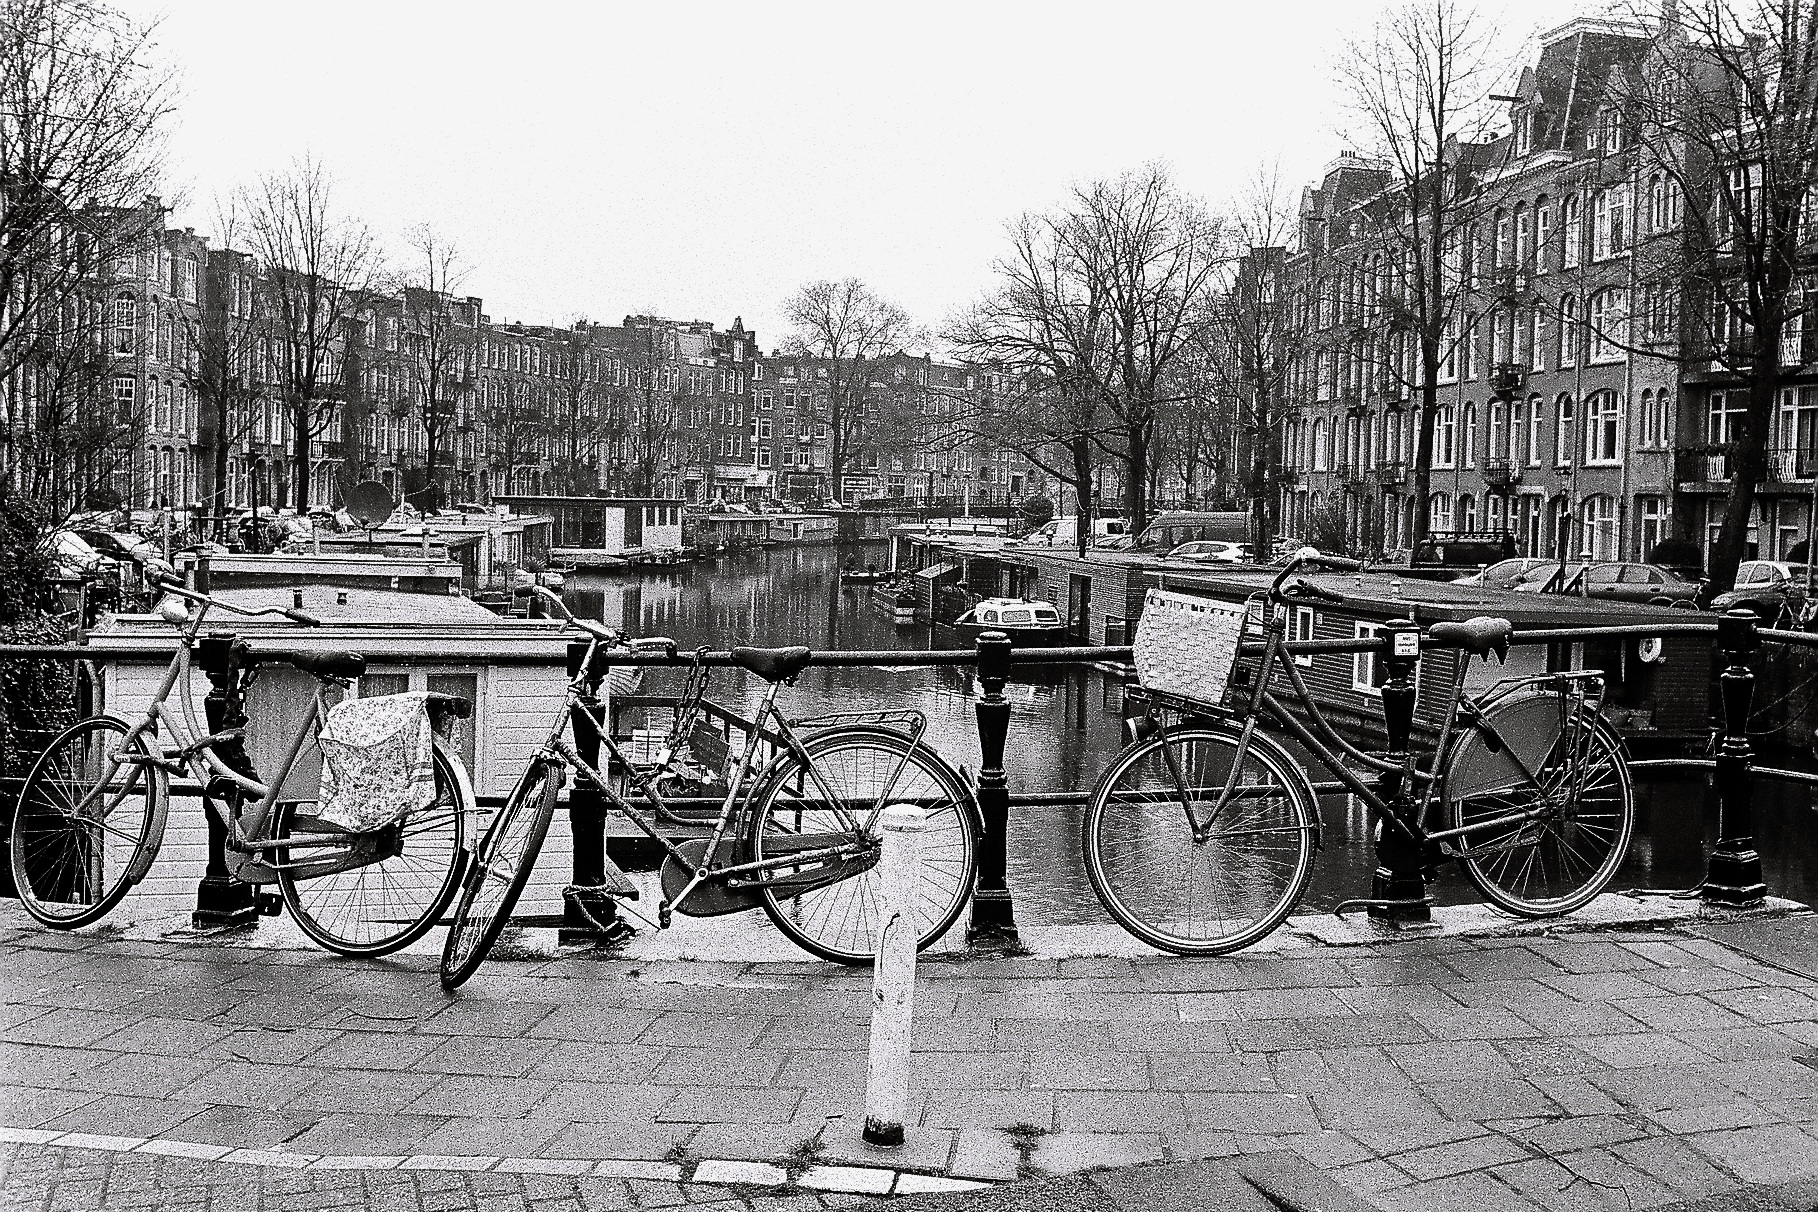 Amsterdam. March '19 // 35mm Photographs -